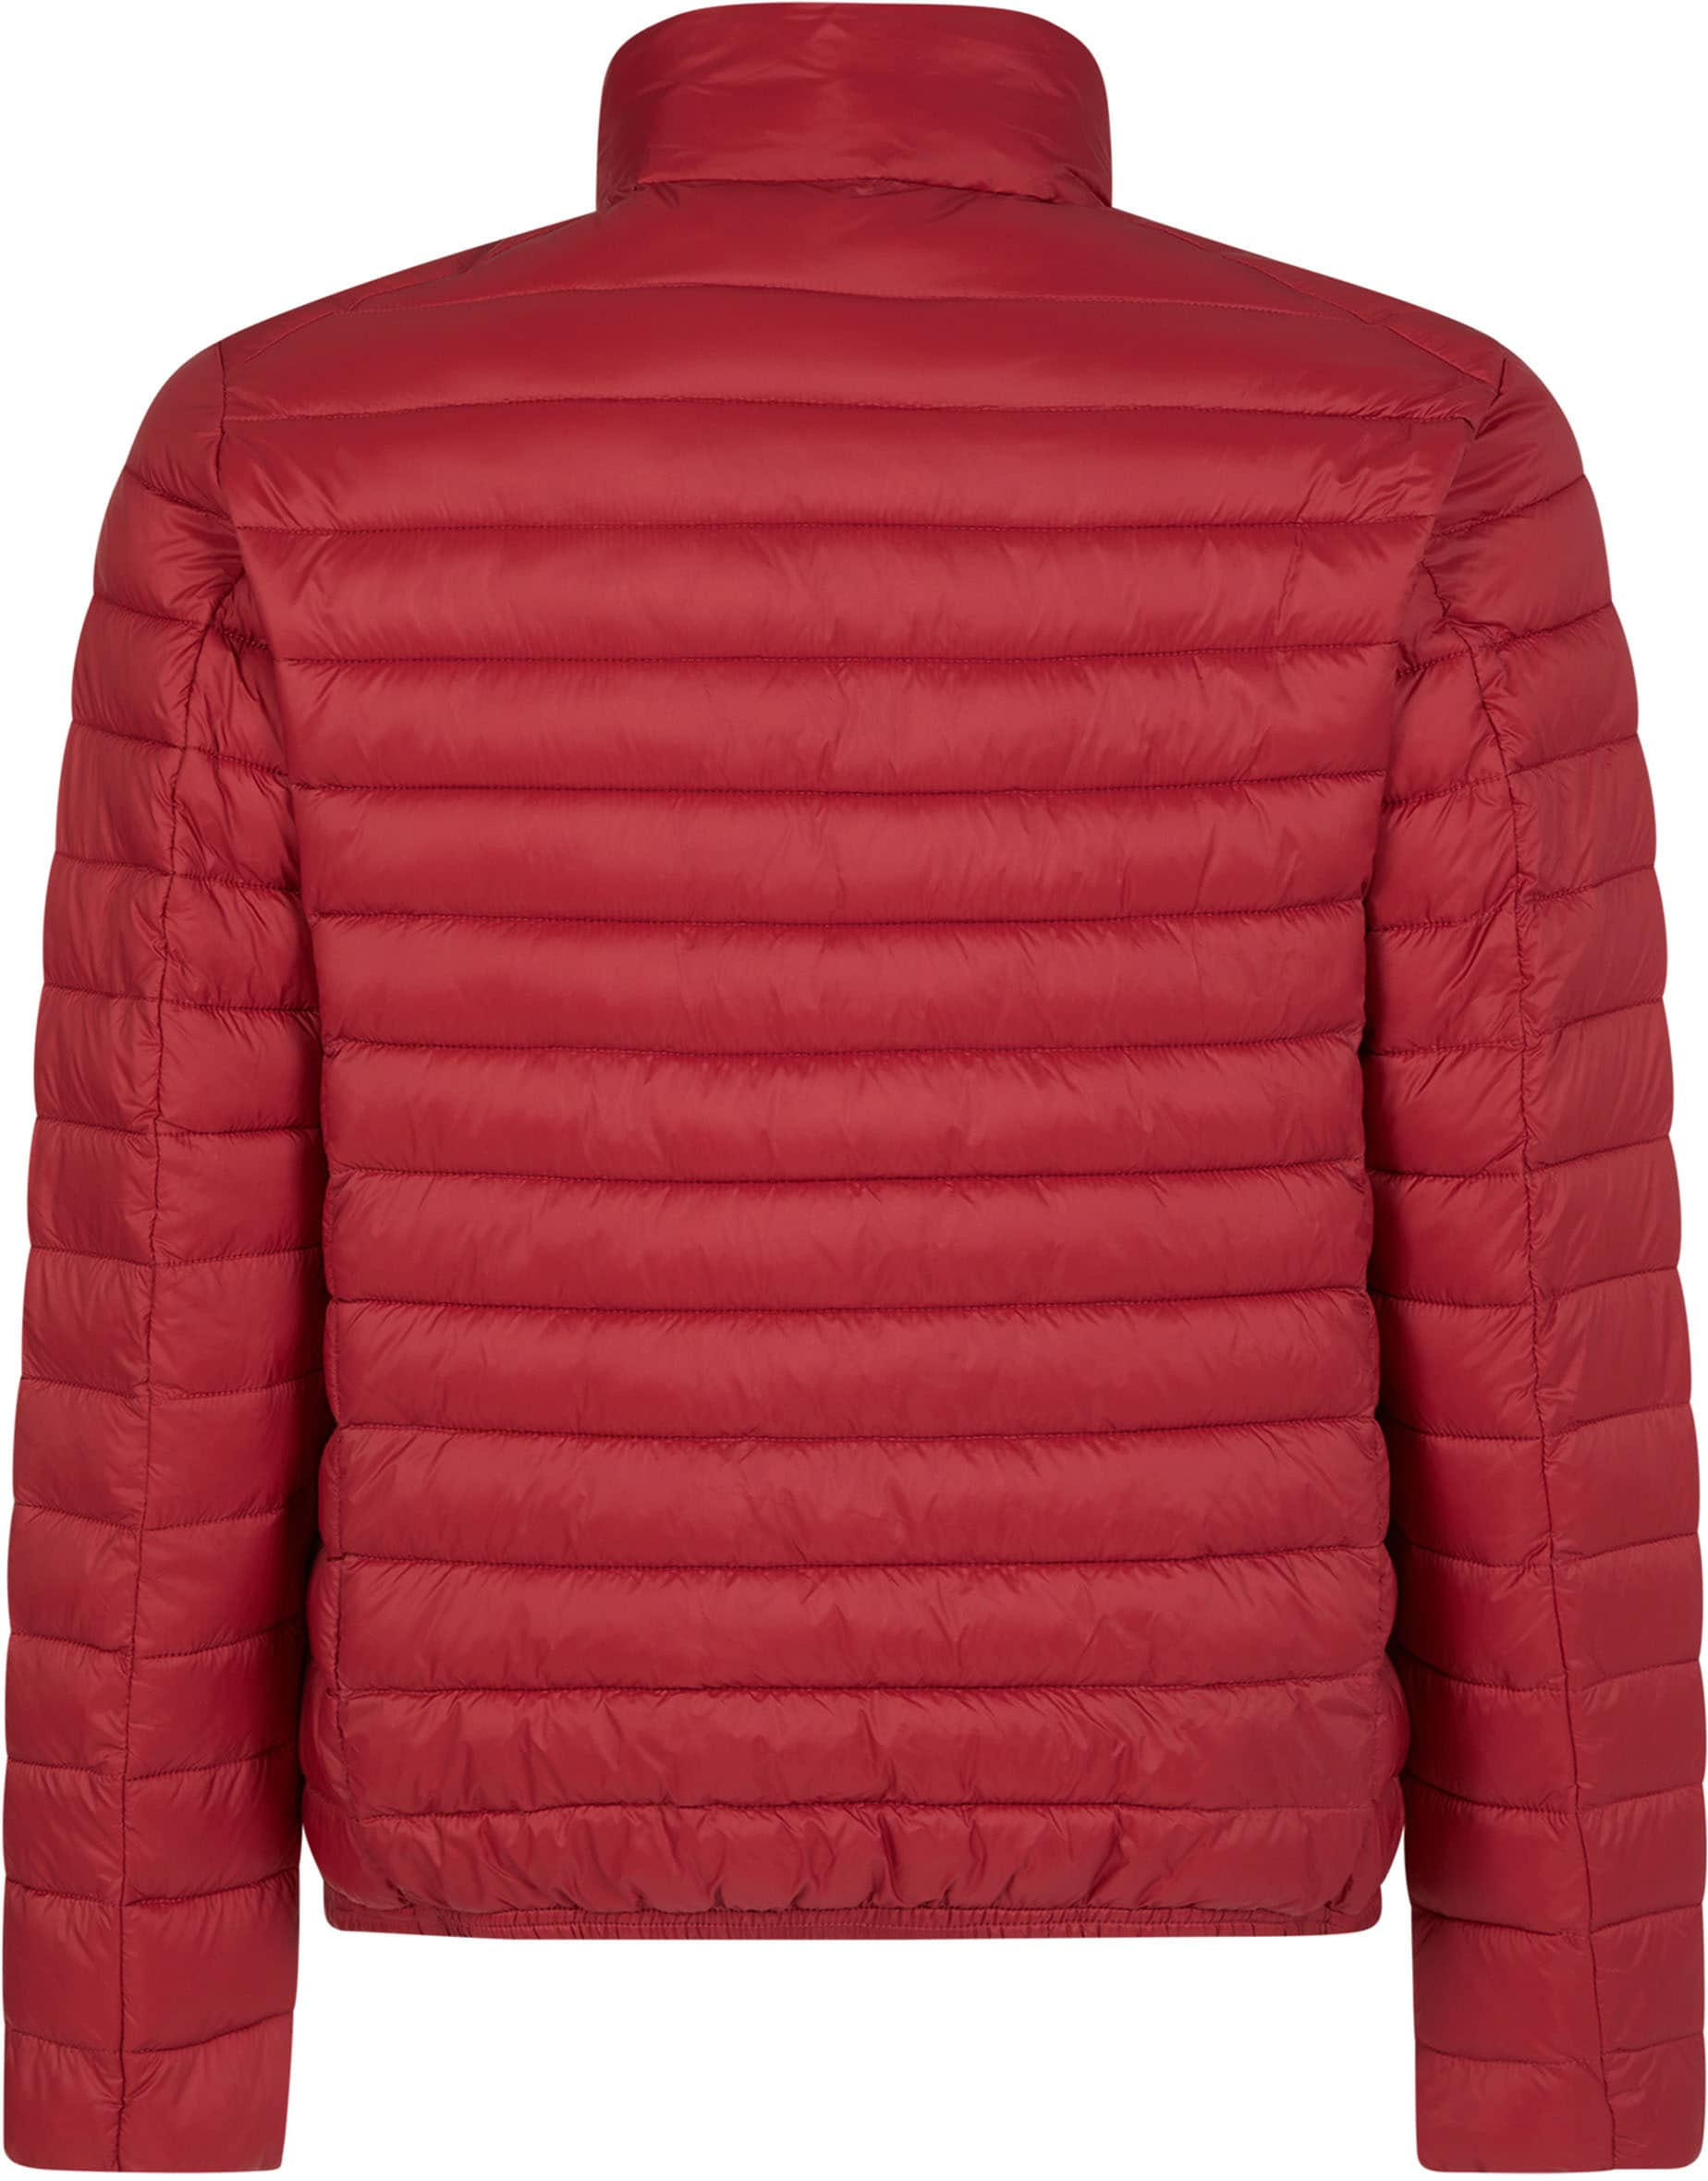 Save The Duck Jacke Mineral Bordeaux foto 2